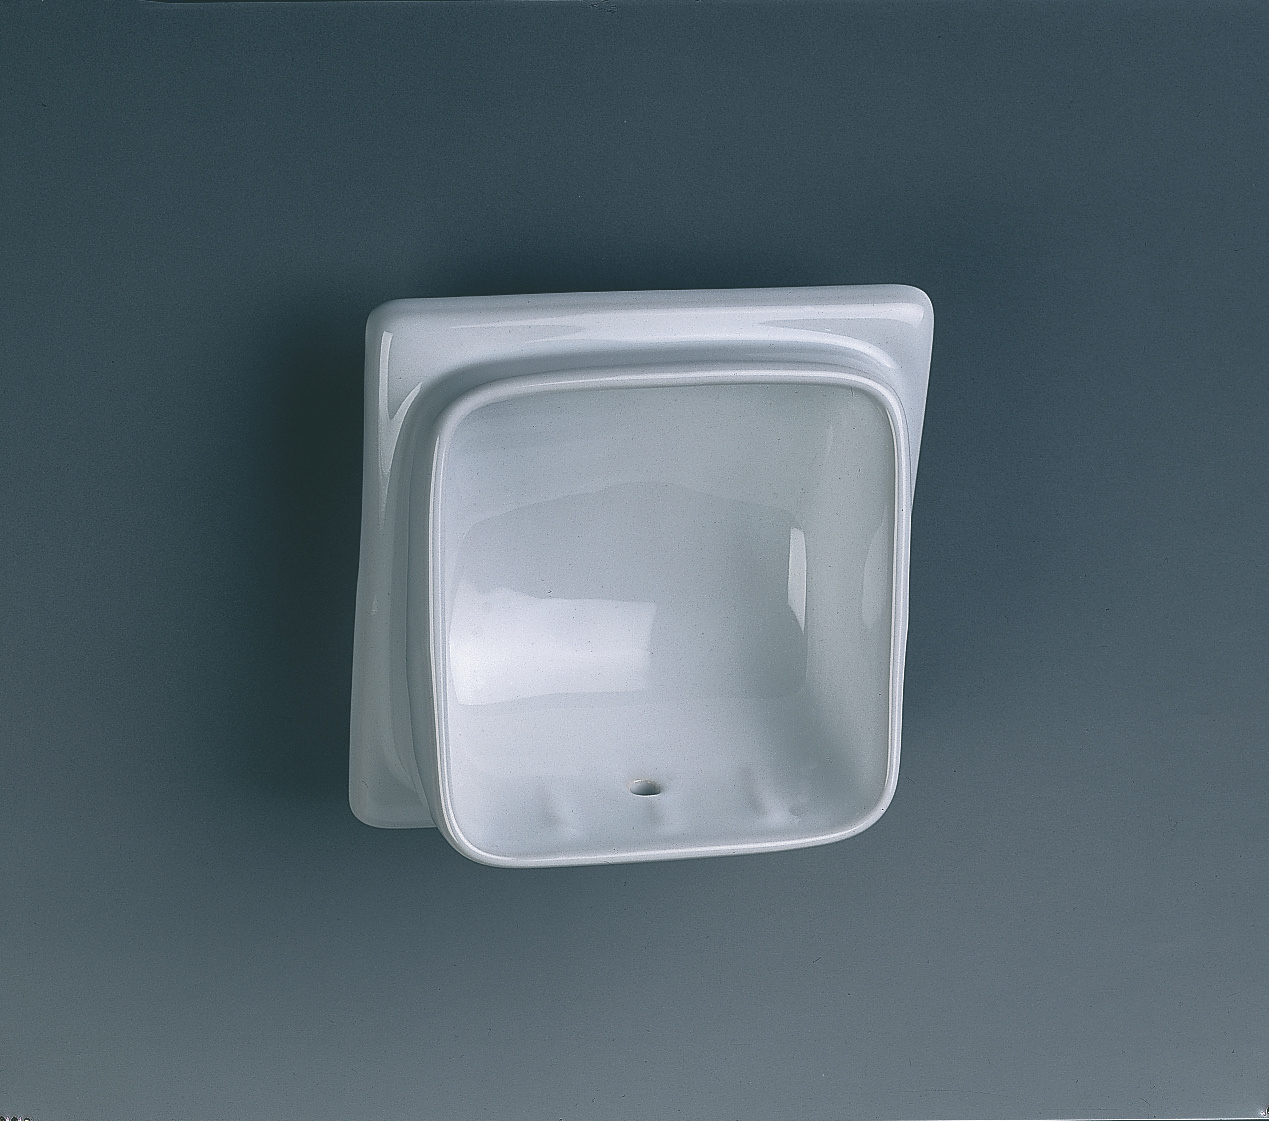 Twyford Built-In Semi Recessed Soap Dish | VC9808WH